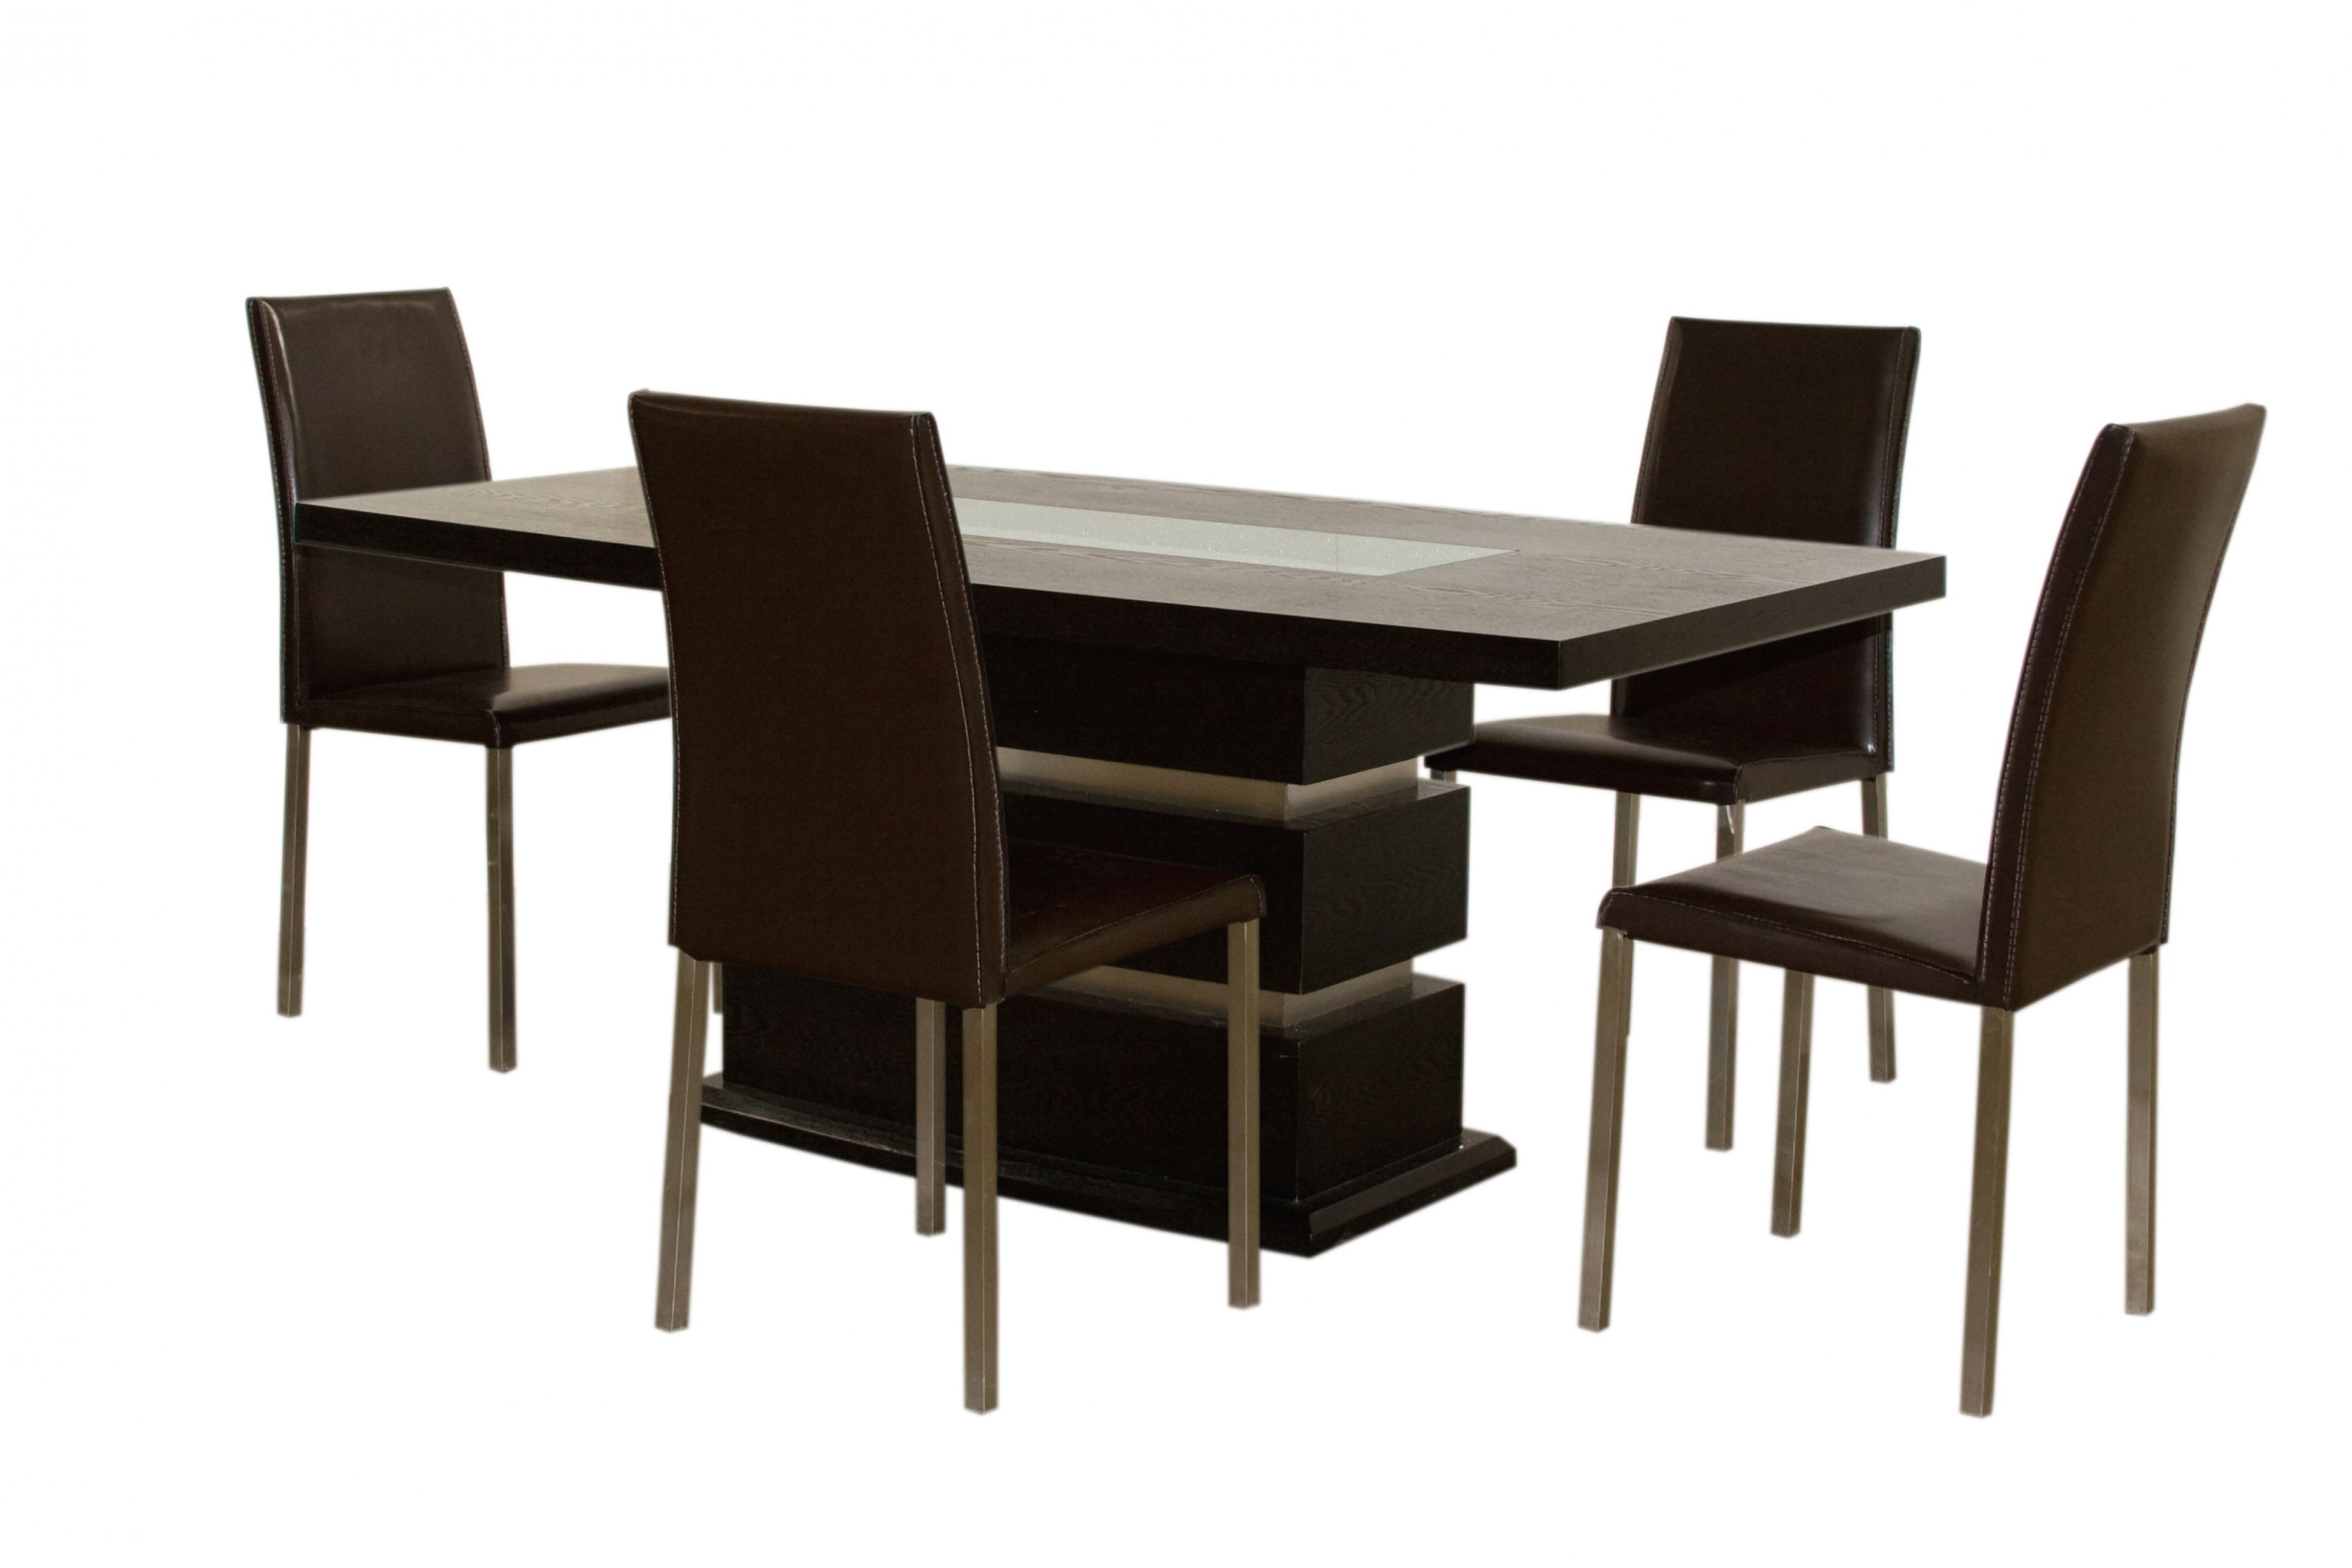 4 Dining Chairs Four Dining Room Chairs Luxury Set Of 4 Dining